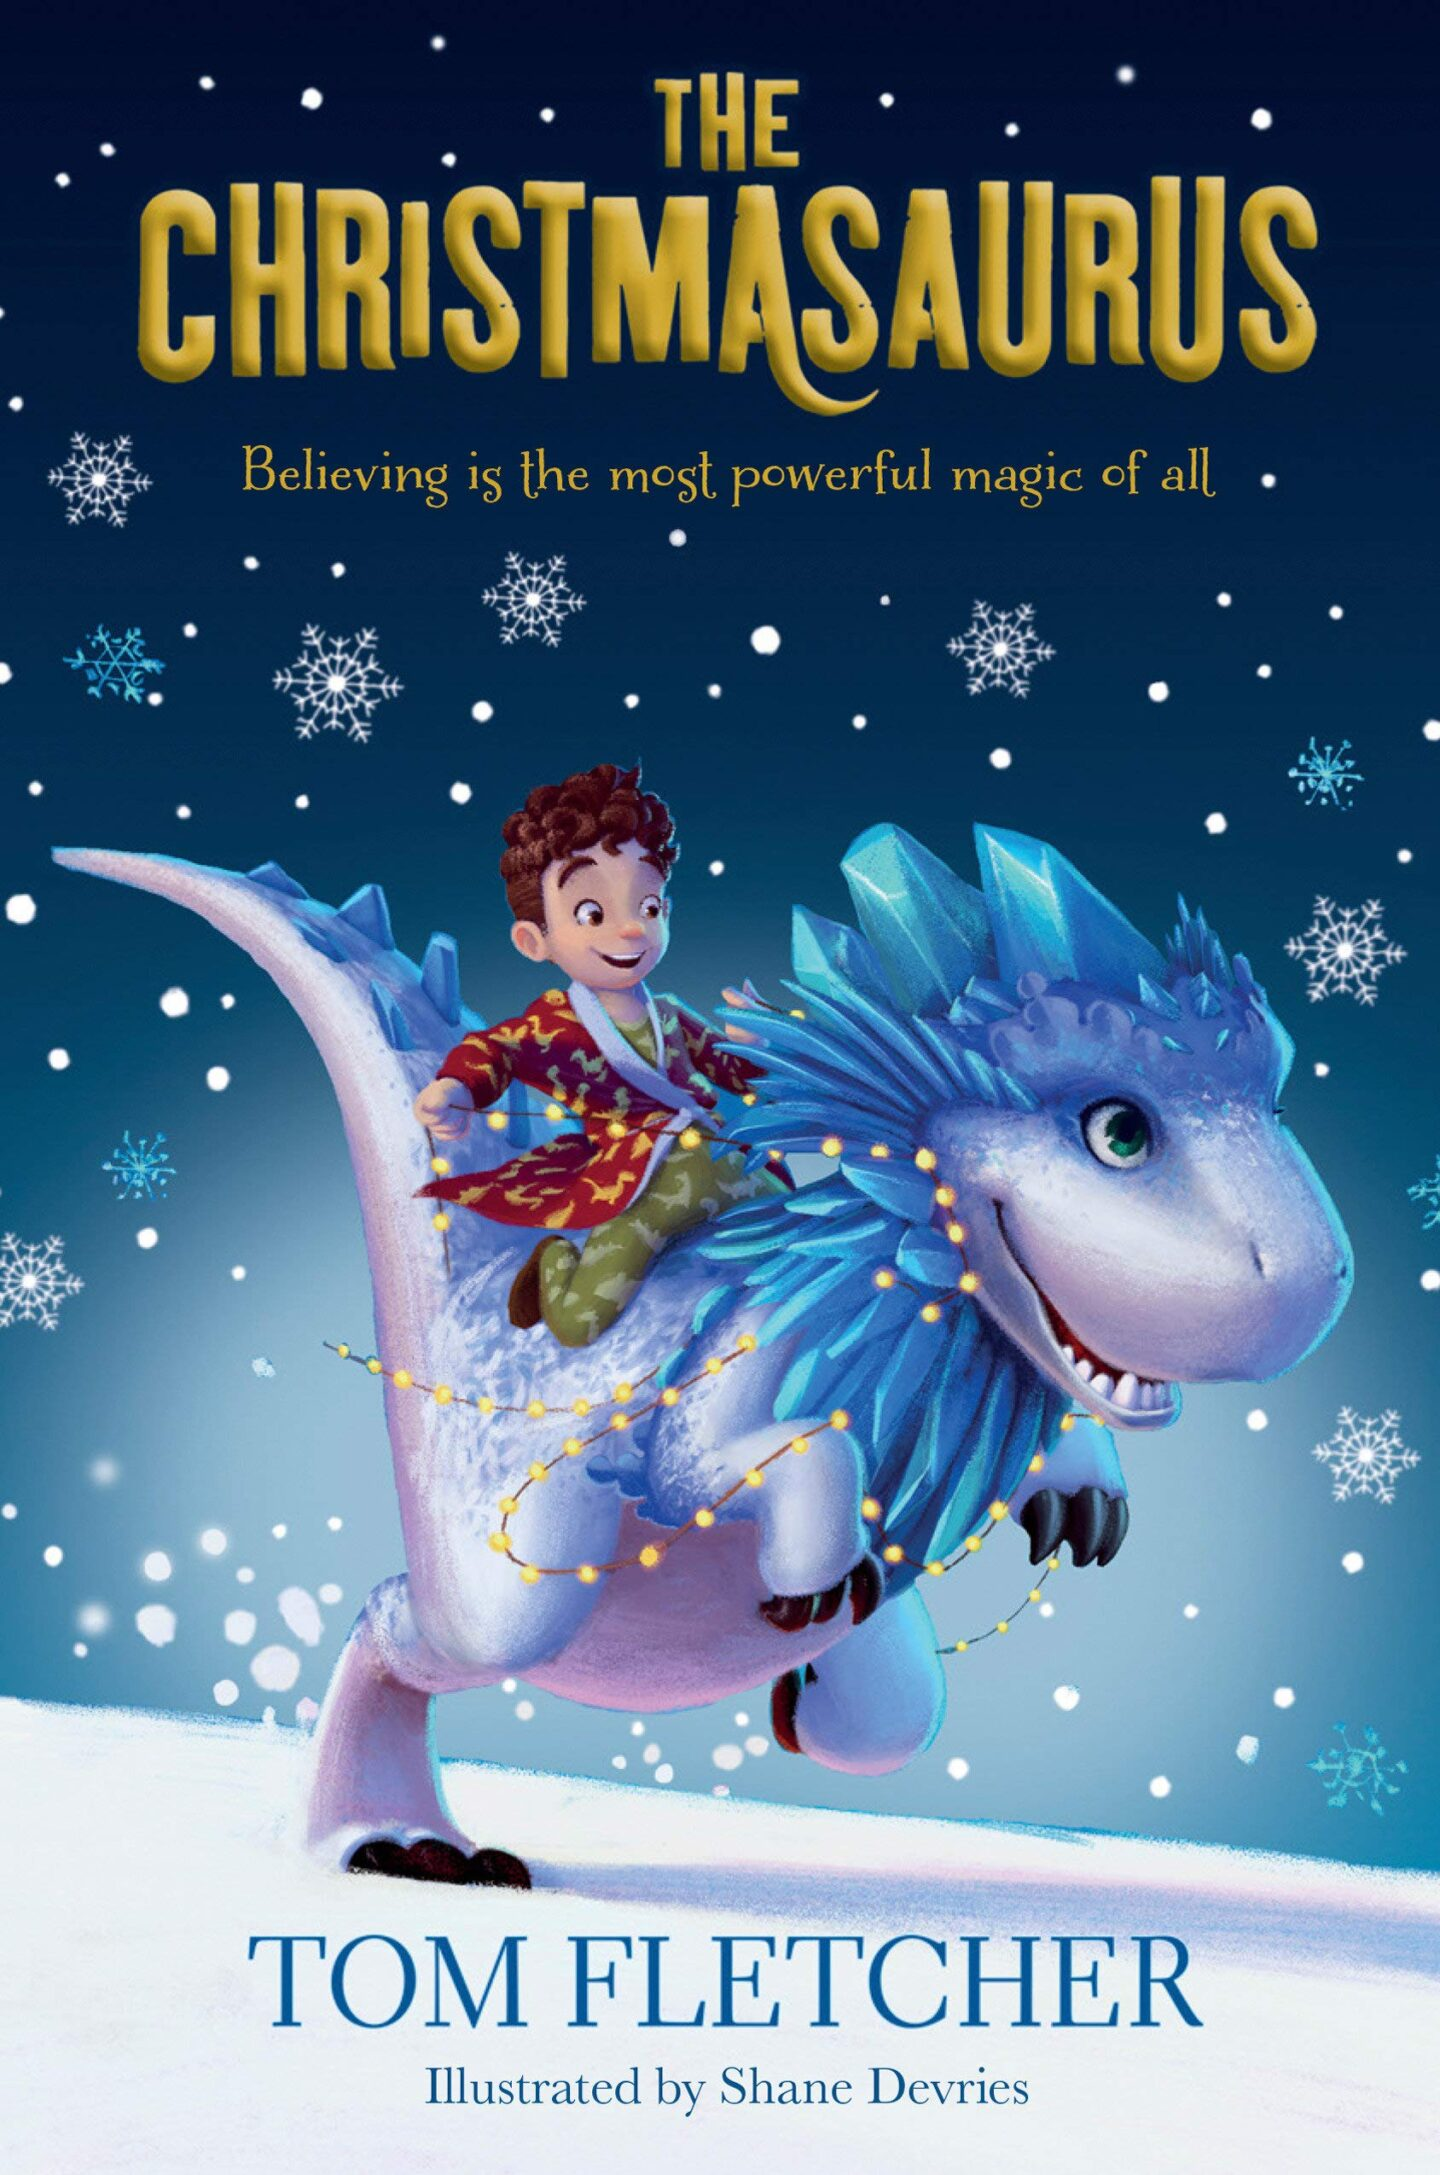 Book cover for The Christmausaurus which features a boy riding a dinosaur